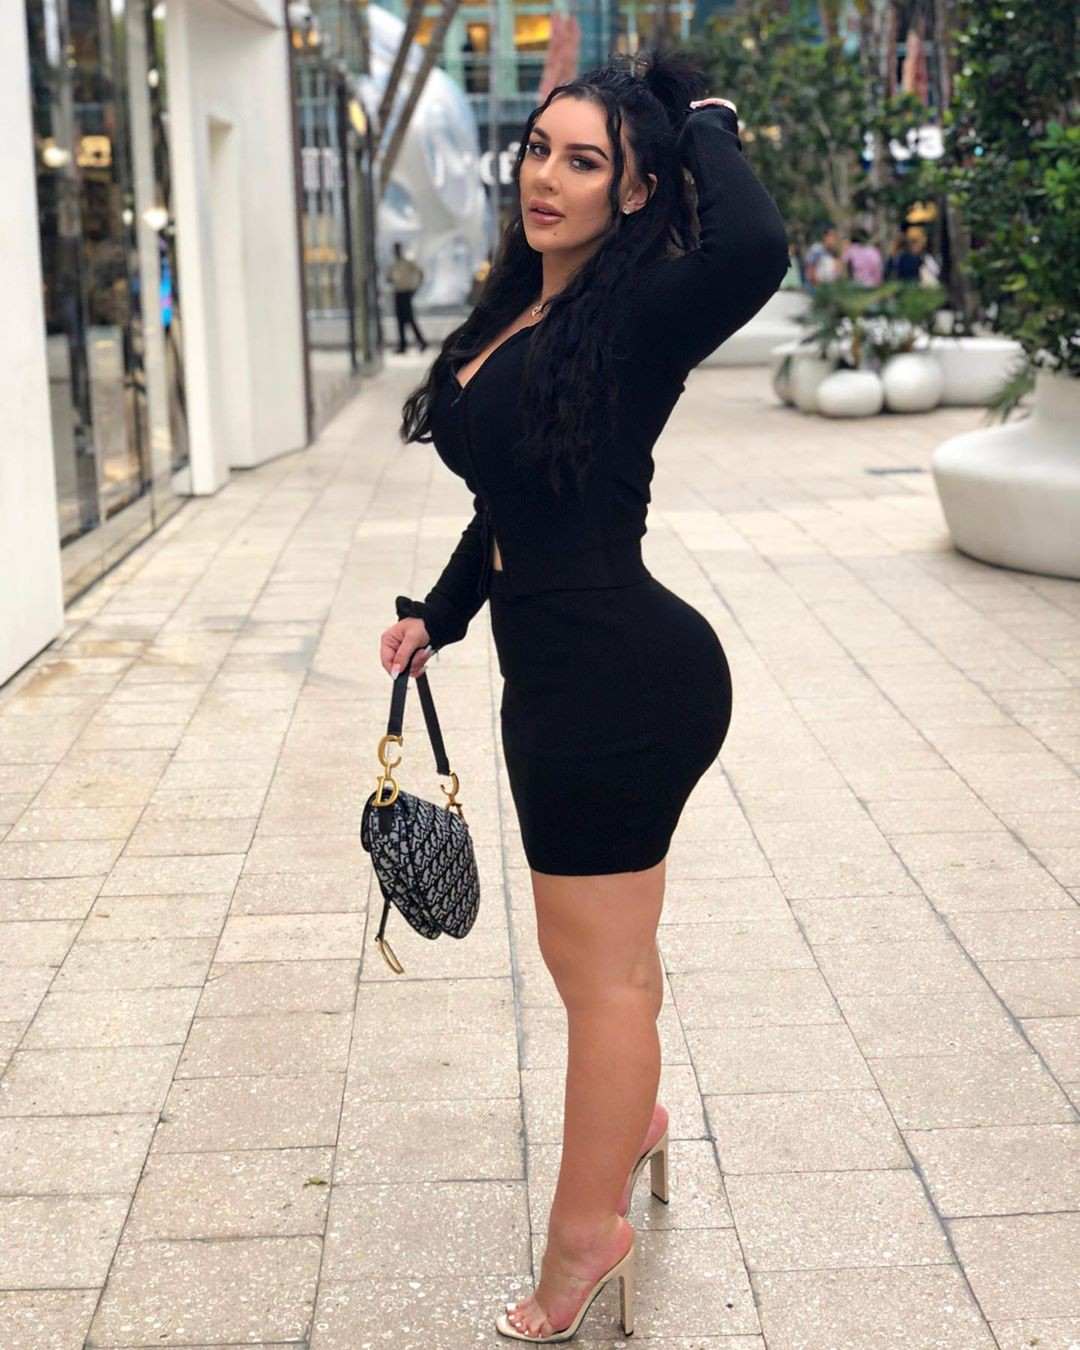 black classy outfit with dress, photography for girl, fashion ideas